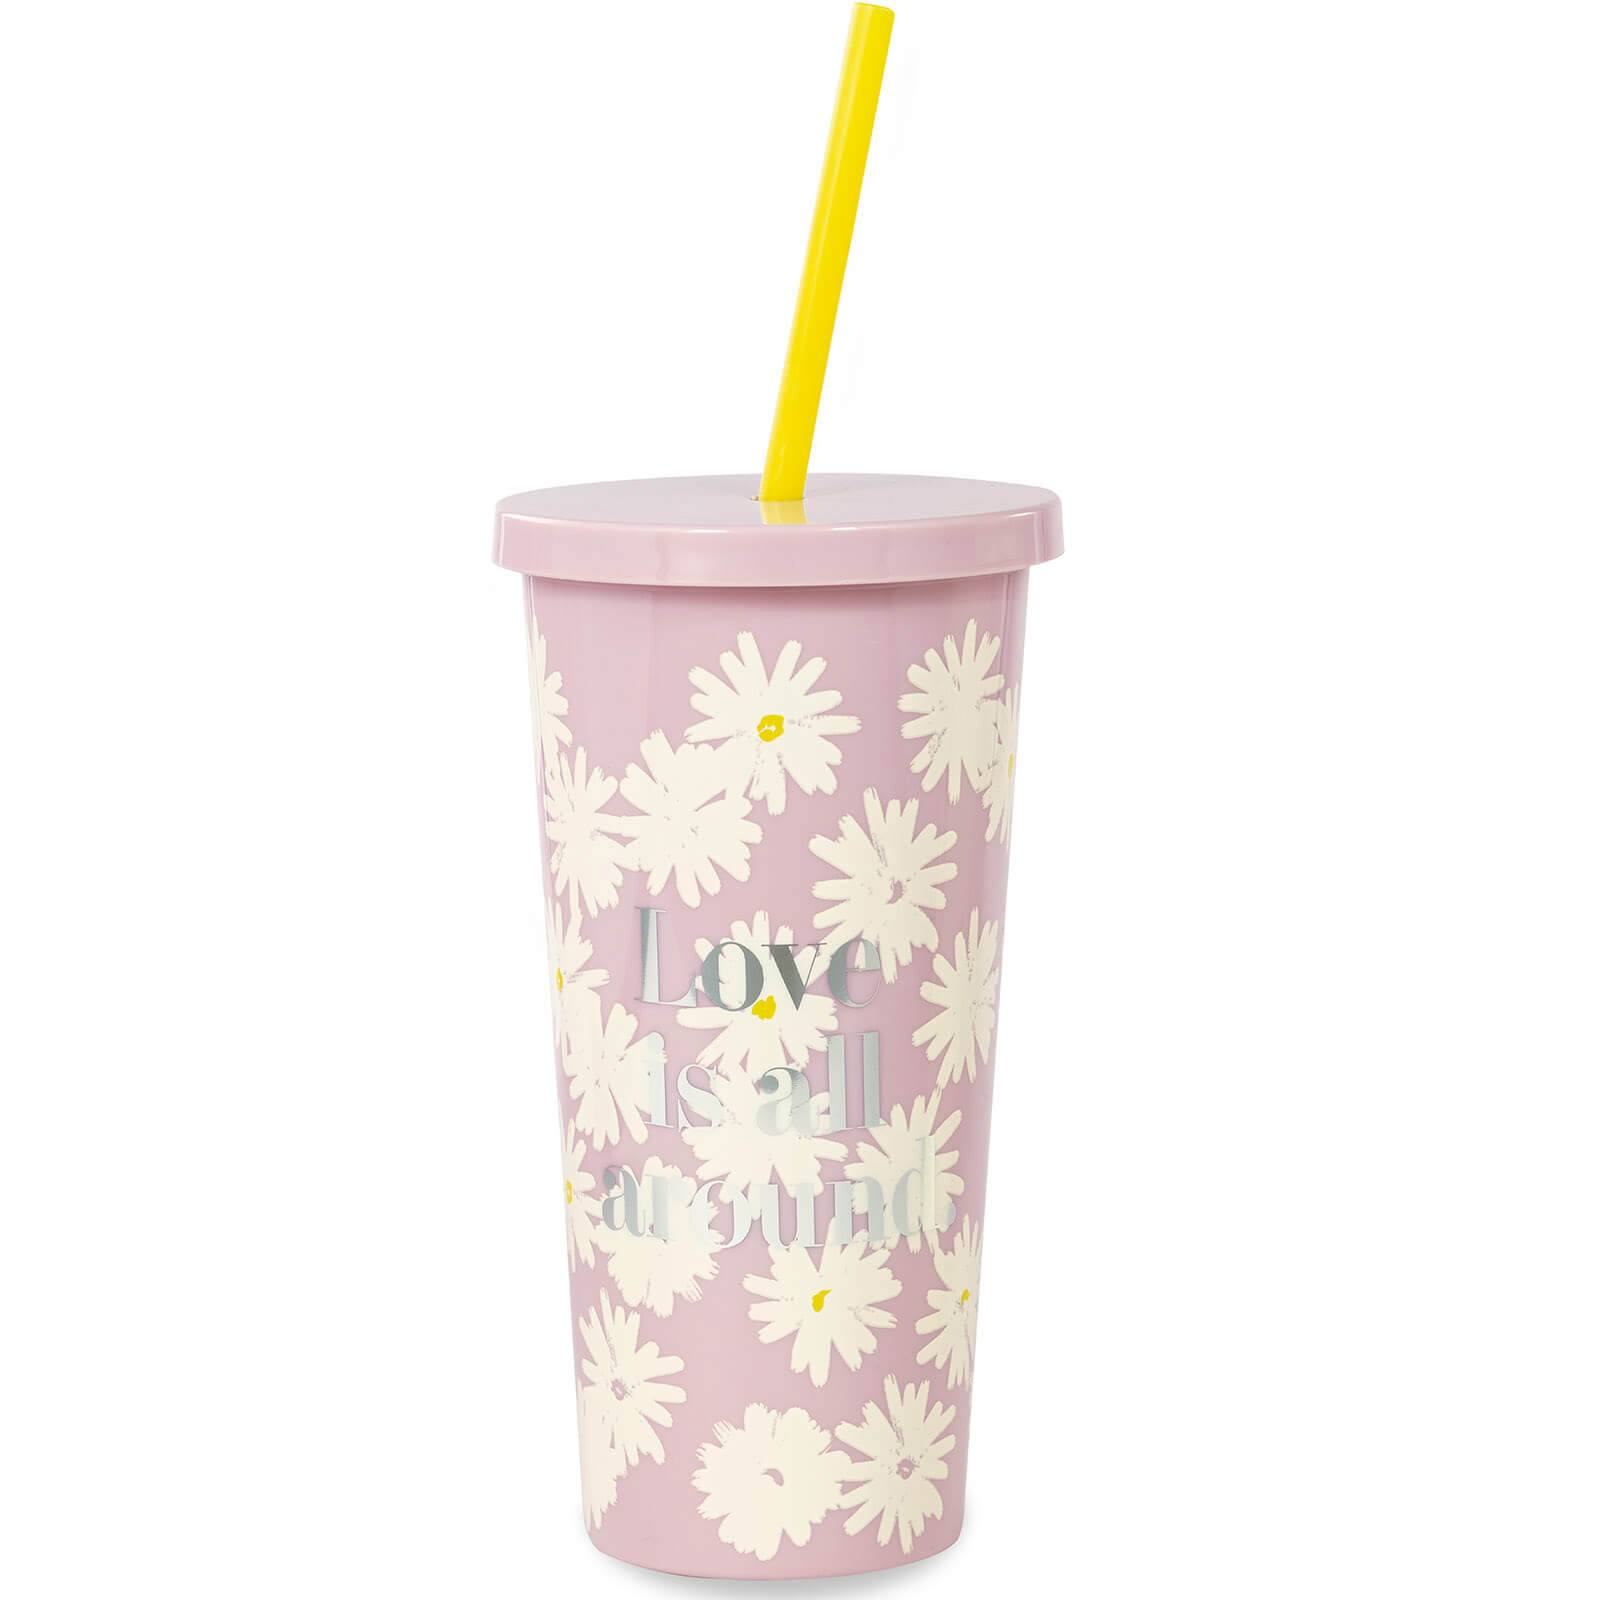 Kate Spade New York Kate Spade Love is All Around Insulated Tumbler